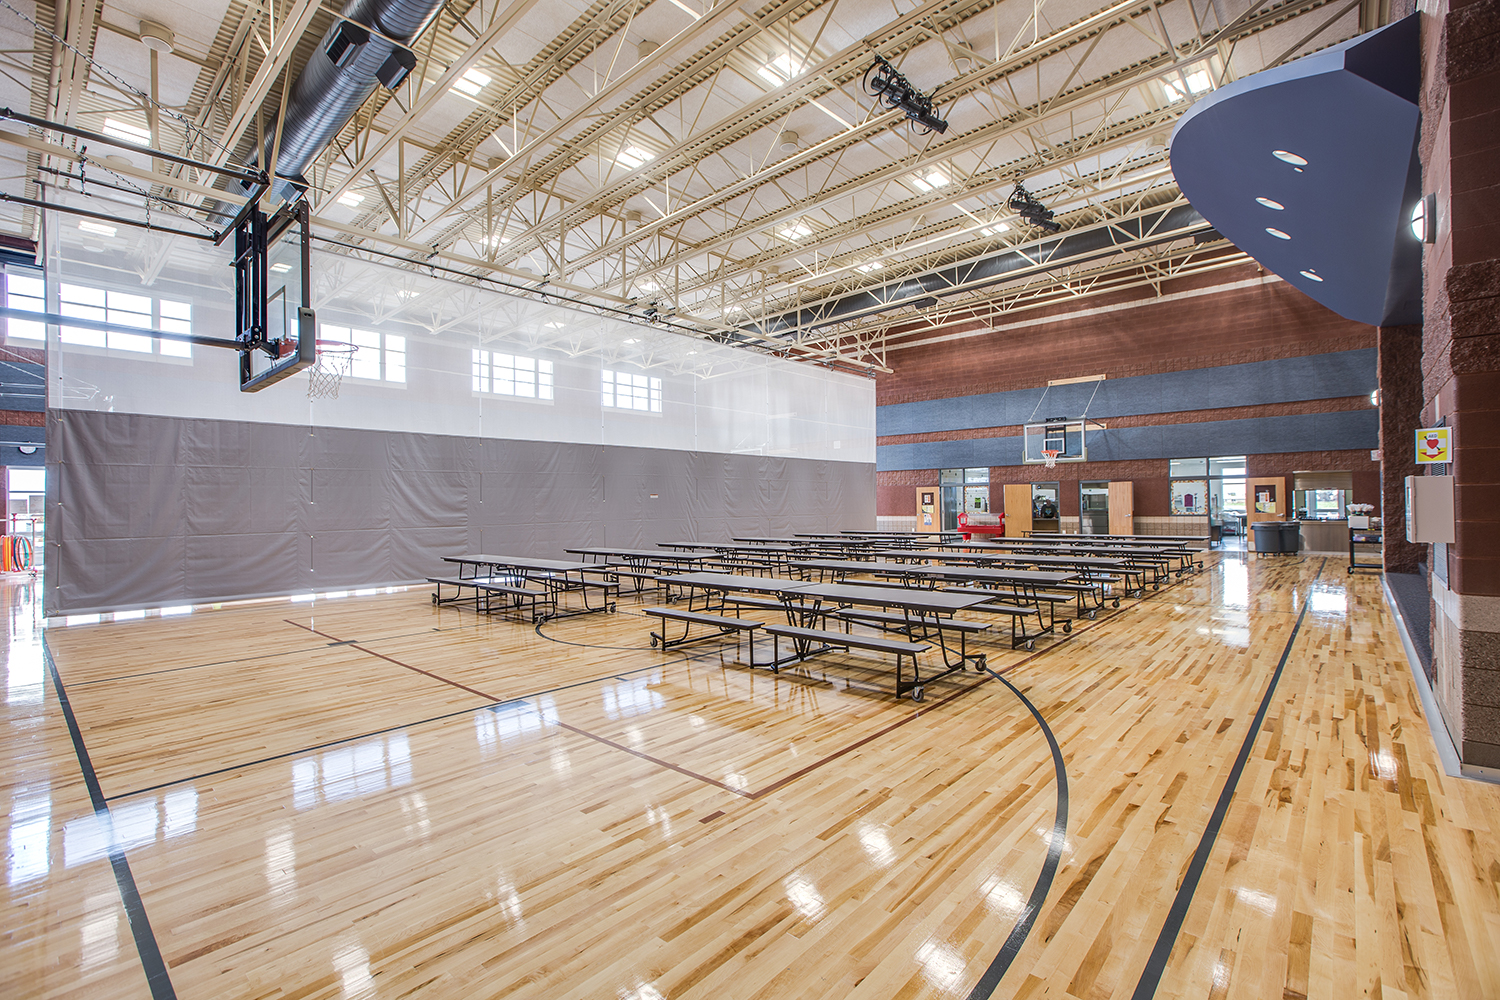 Lewiston Elementary School Gym & Cafeteria - Lewiston, UT